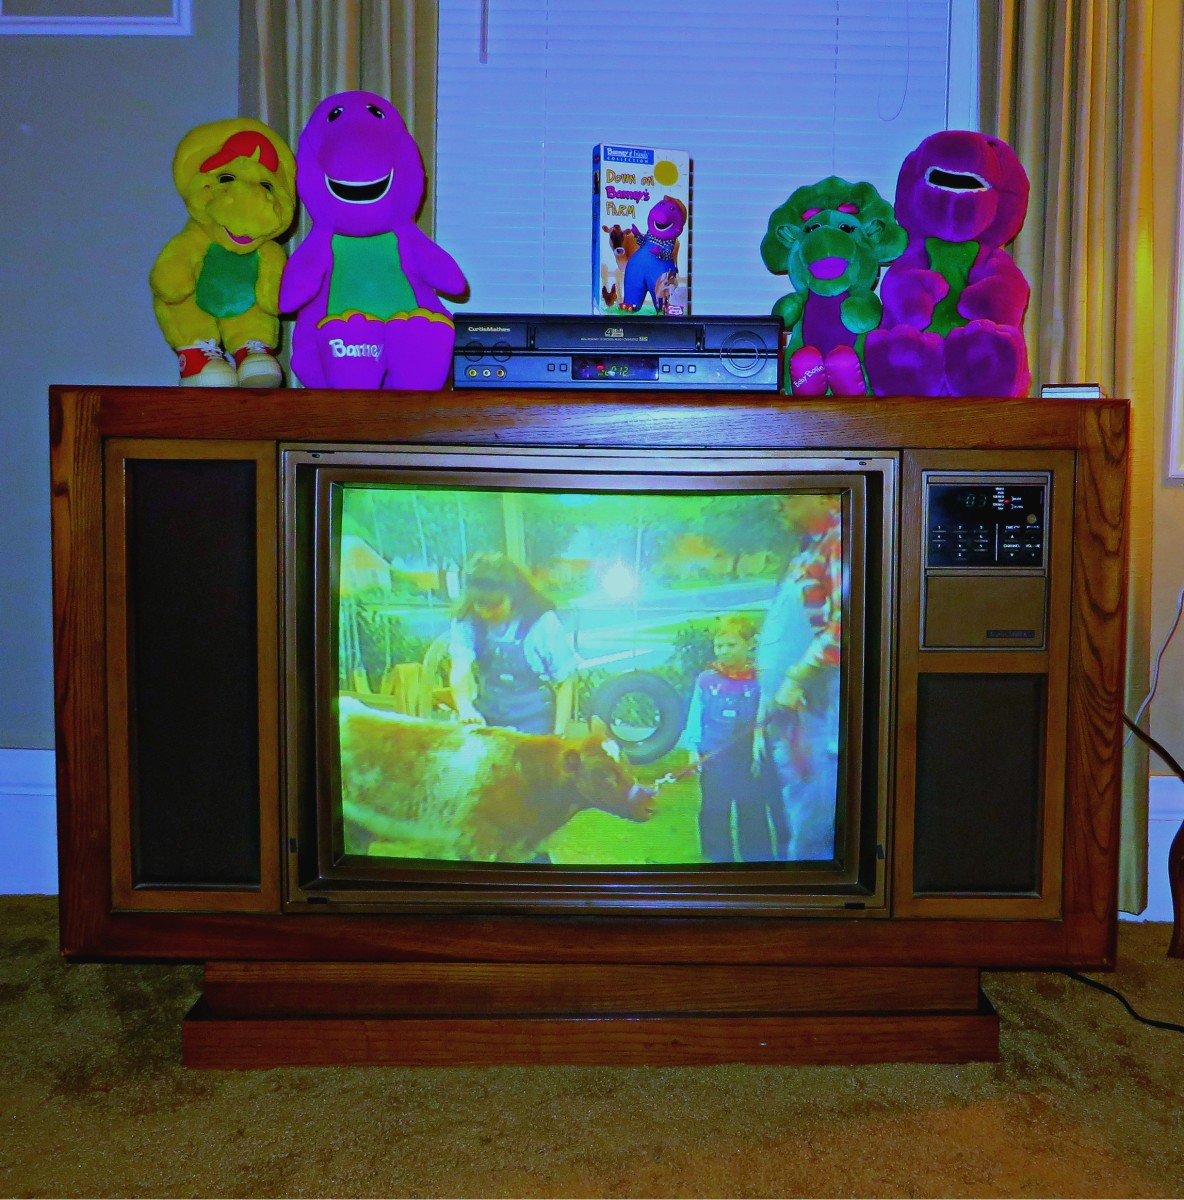 The 1985 Curtis Mathes Color Console Playing a Barney Home Video VHS tape from a Curtis Mathes VCR tape player in the year 2018, vintage fun for the whole family to enjoy over and over again.